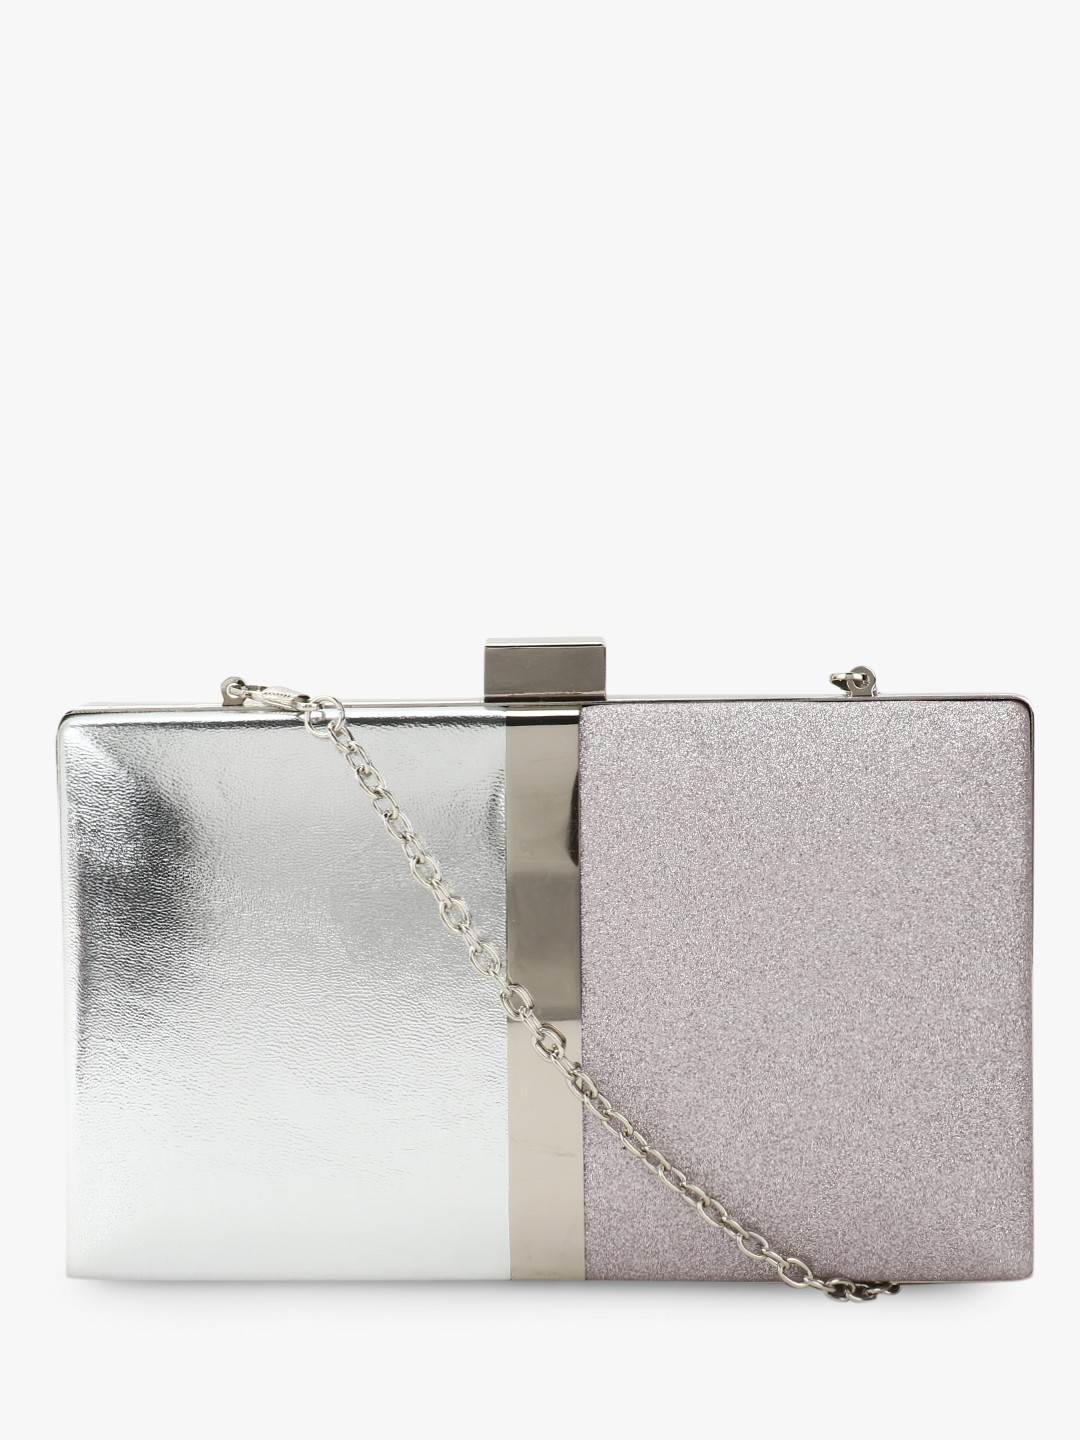 New Look Silver Colour Block Metallic Box Clutch 1